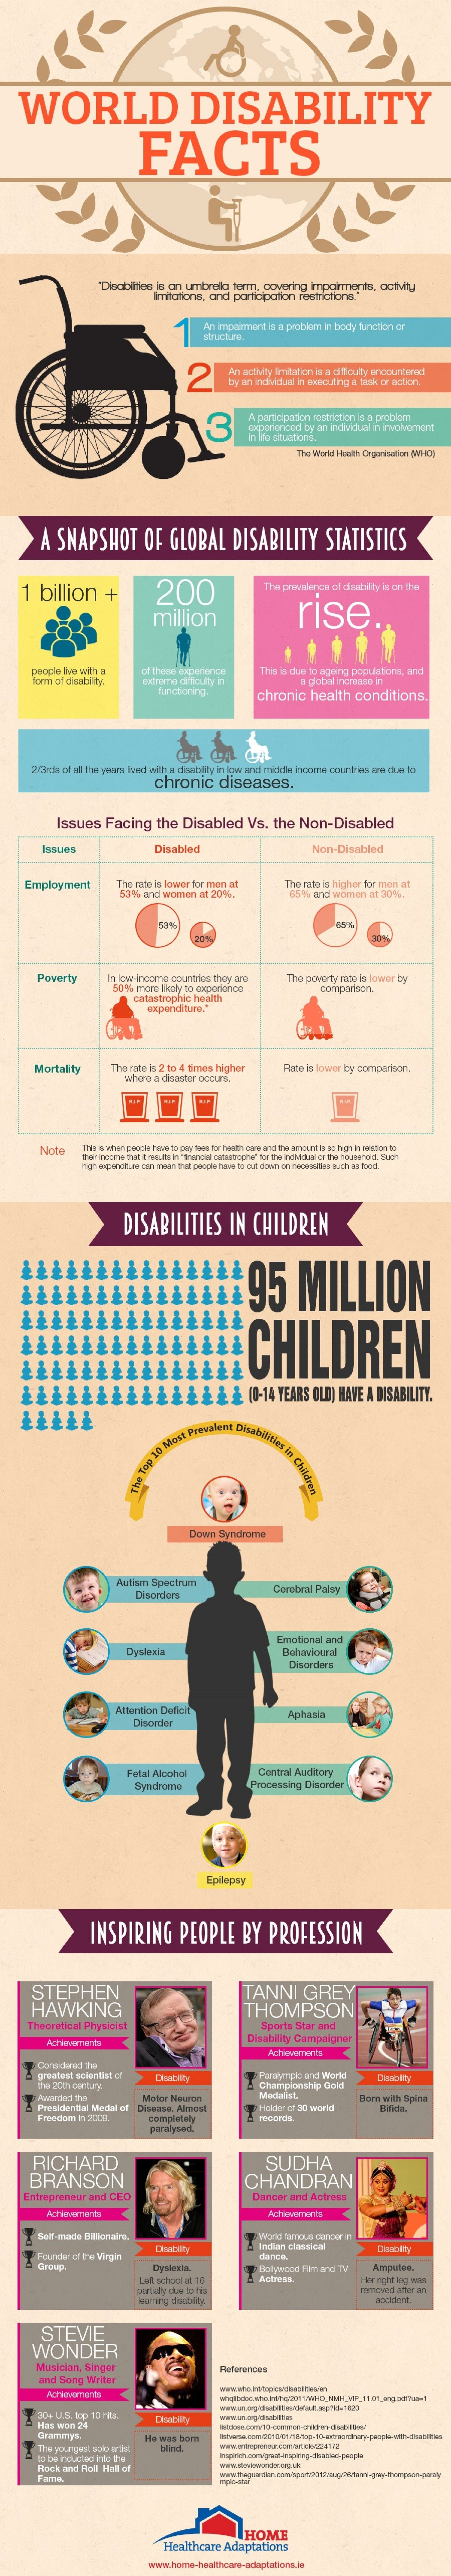 World Disability Facts Infographic